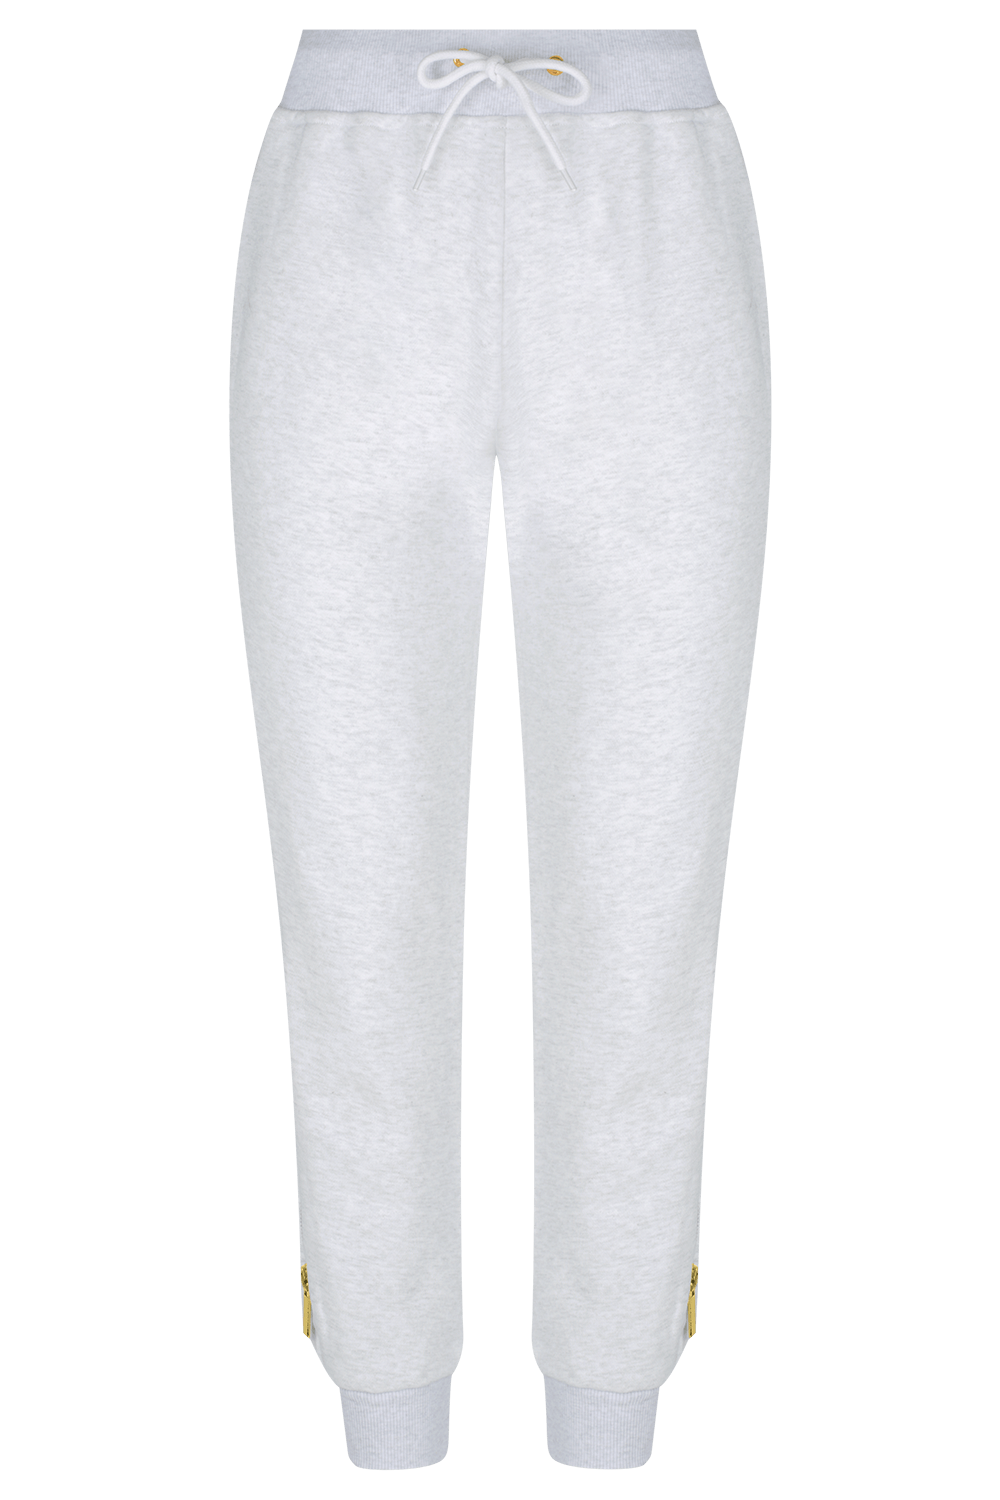 SLIDE AWAY Jogger Pants - GRY/GLD | HAUS OF SONG